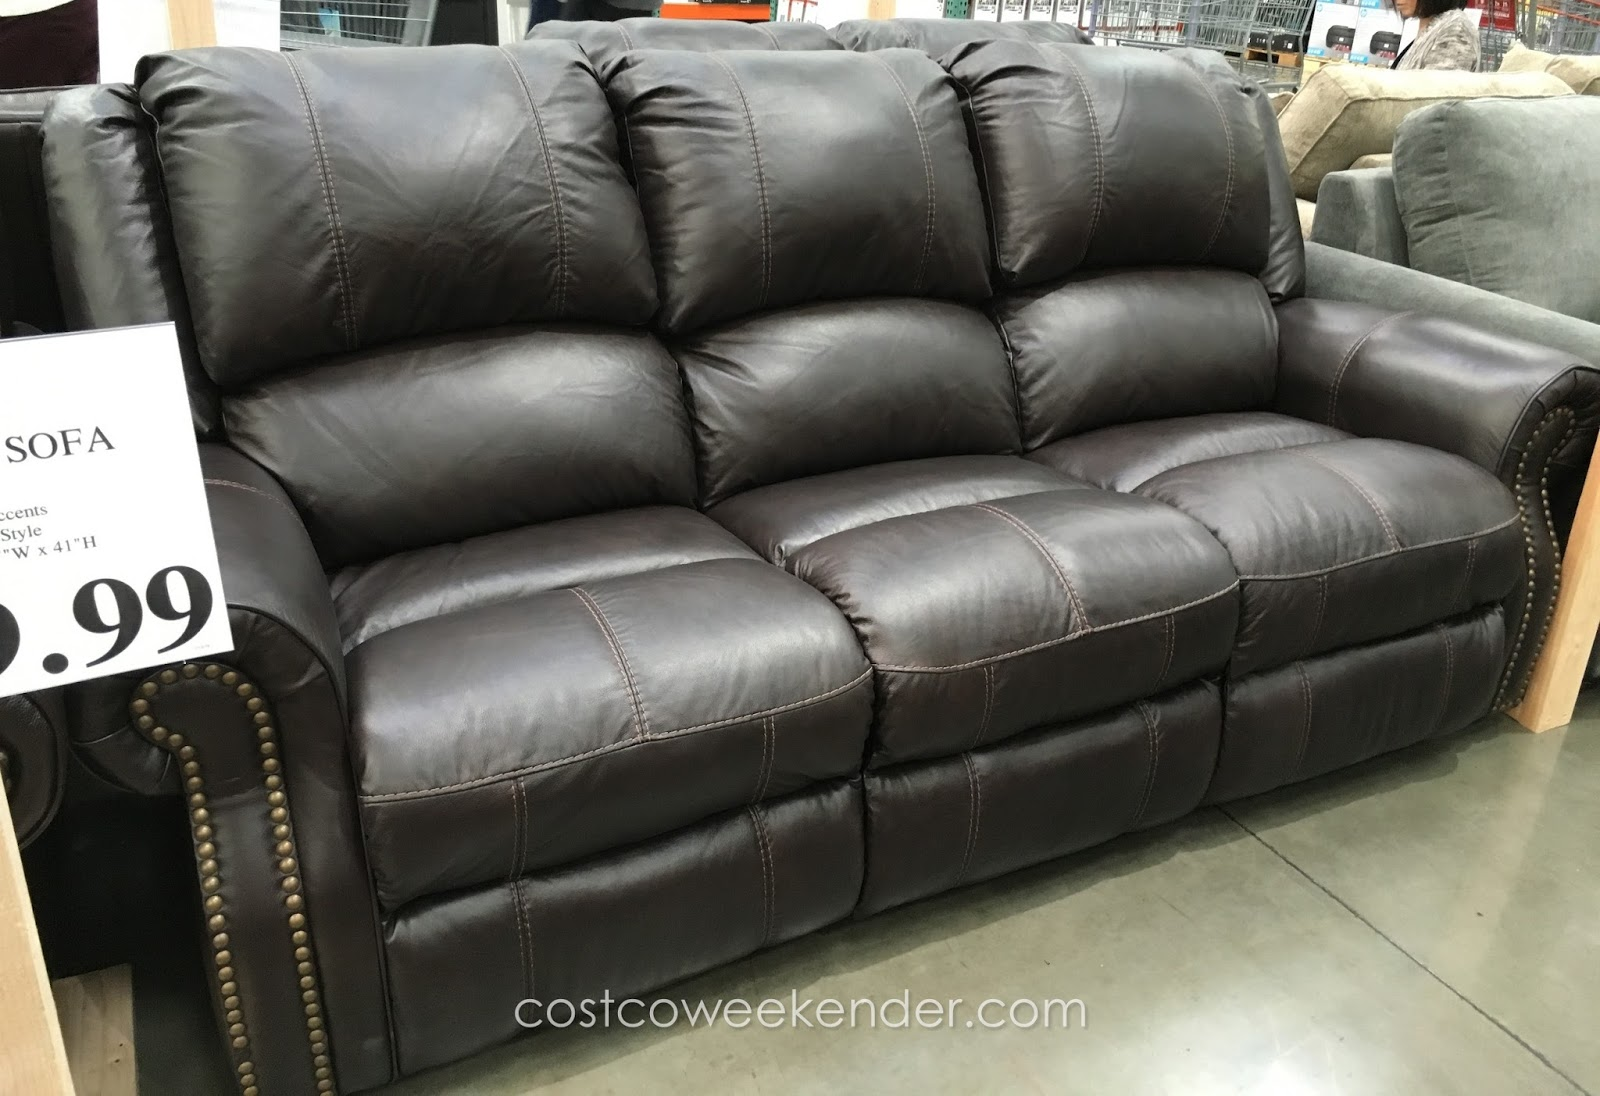 Recliner Sofas Leather Sofa Seats Foam Berkline Reclining Costco Weekender